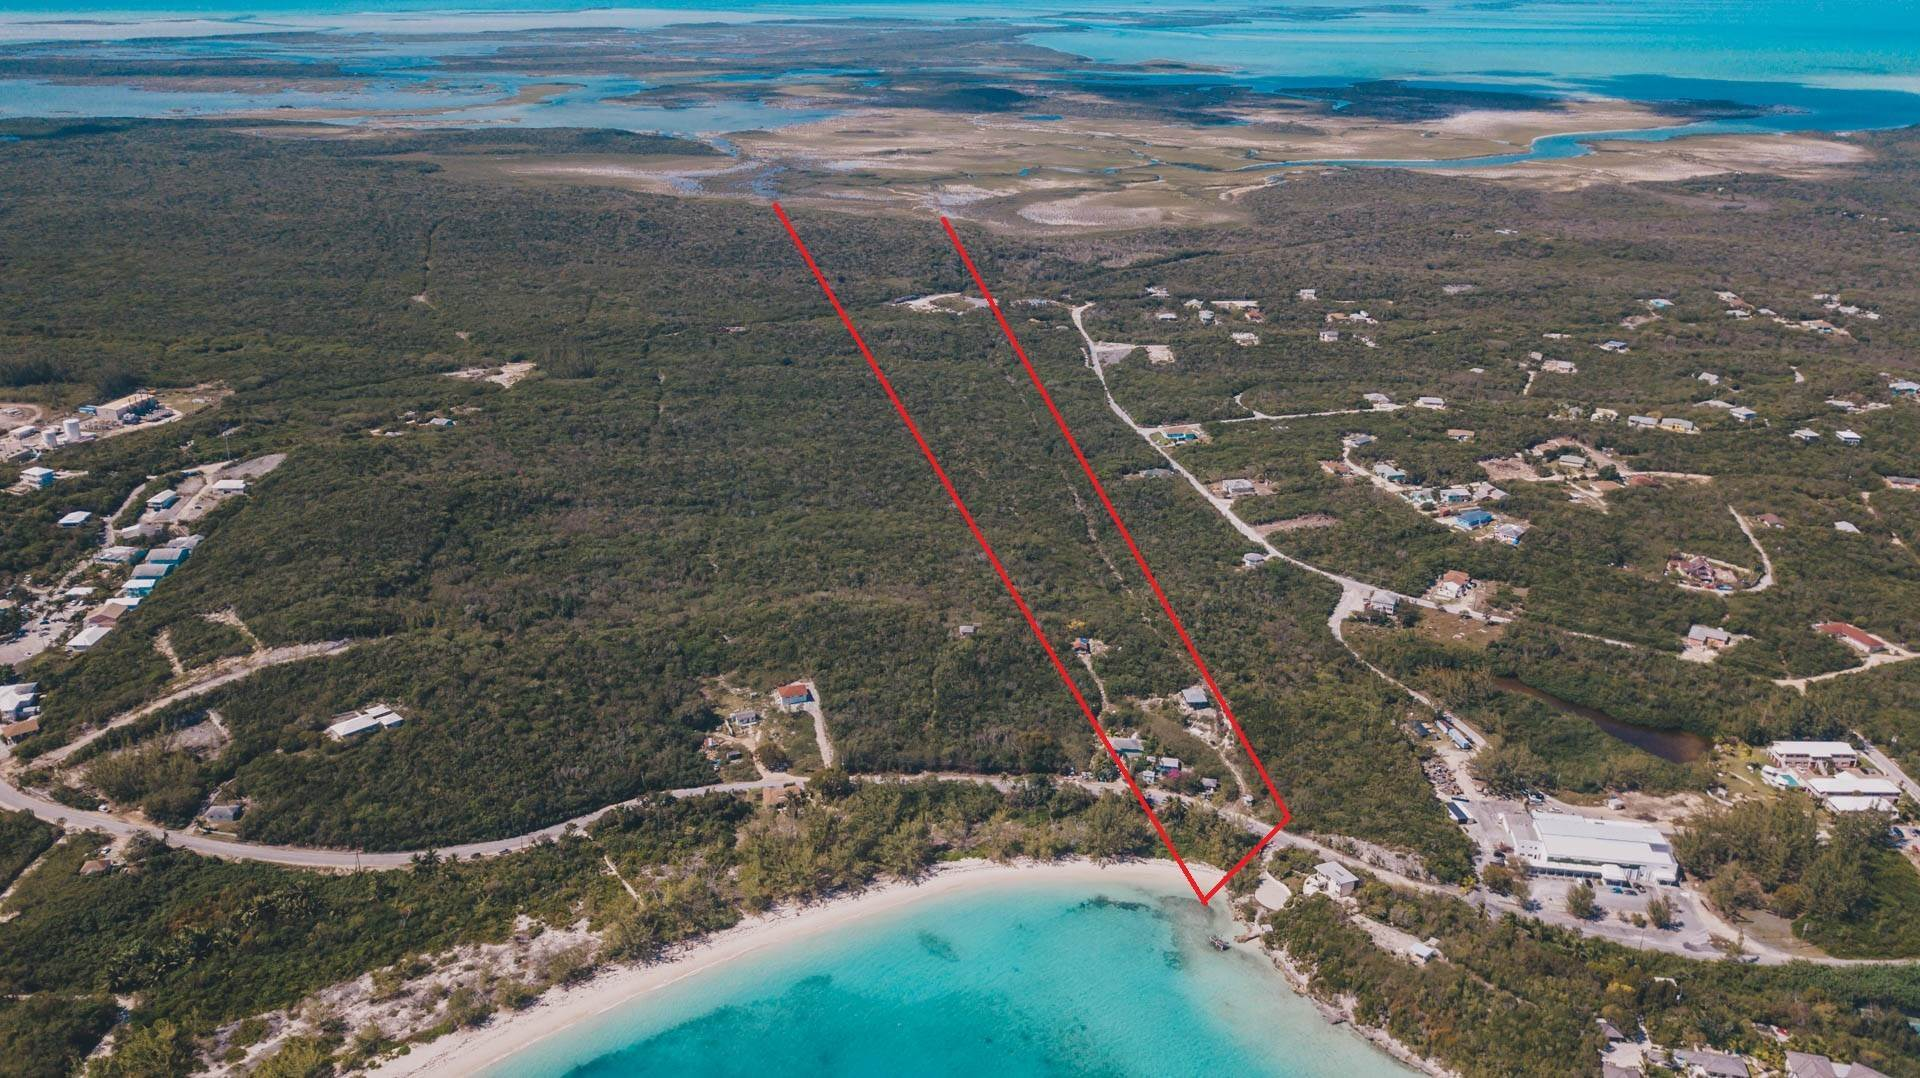 Land/Lot for Sale at Jolly Hall Beach Front Acreage and Open Zoned Lots - MLS 42624 Exumas, Bahamas